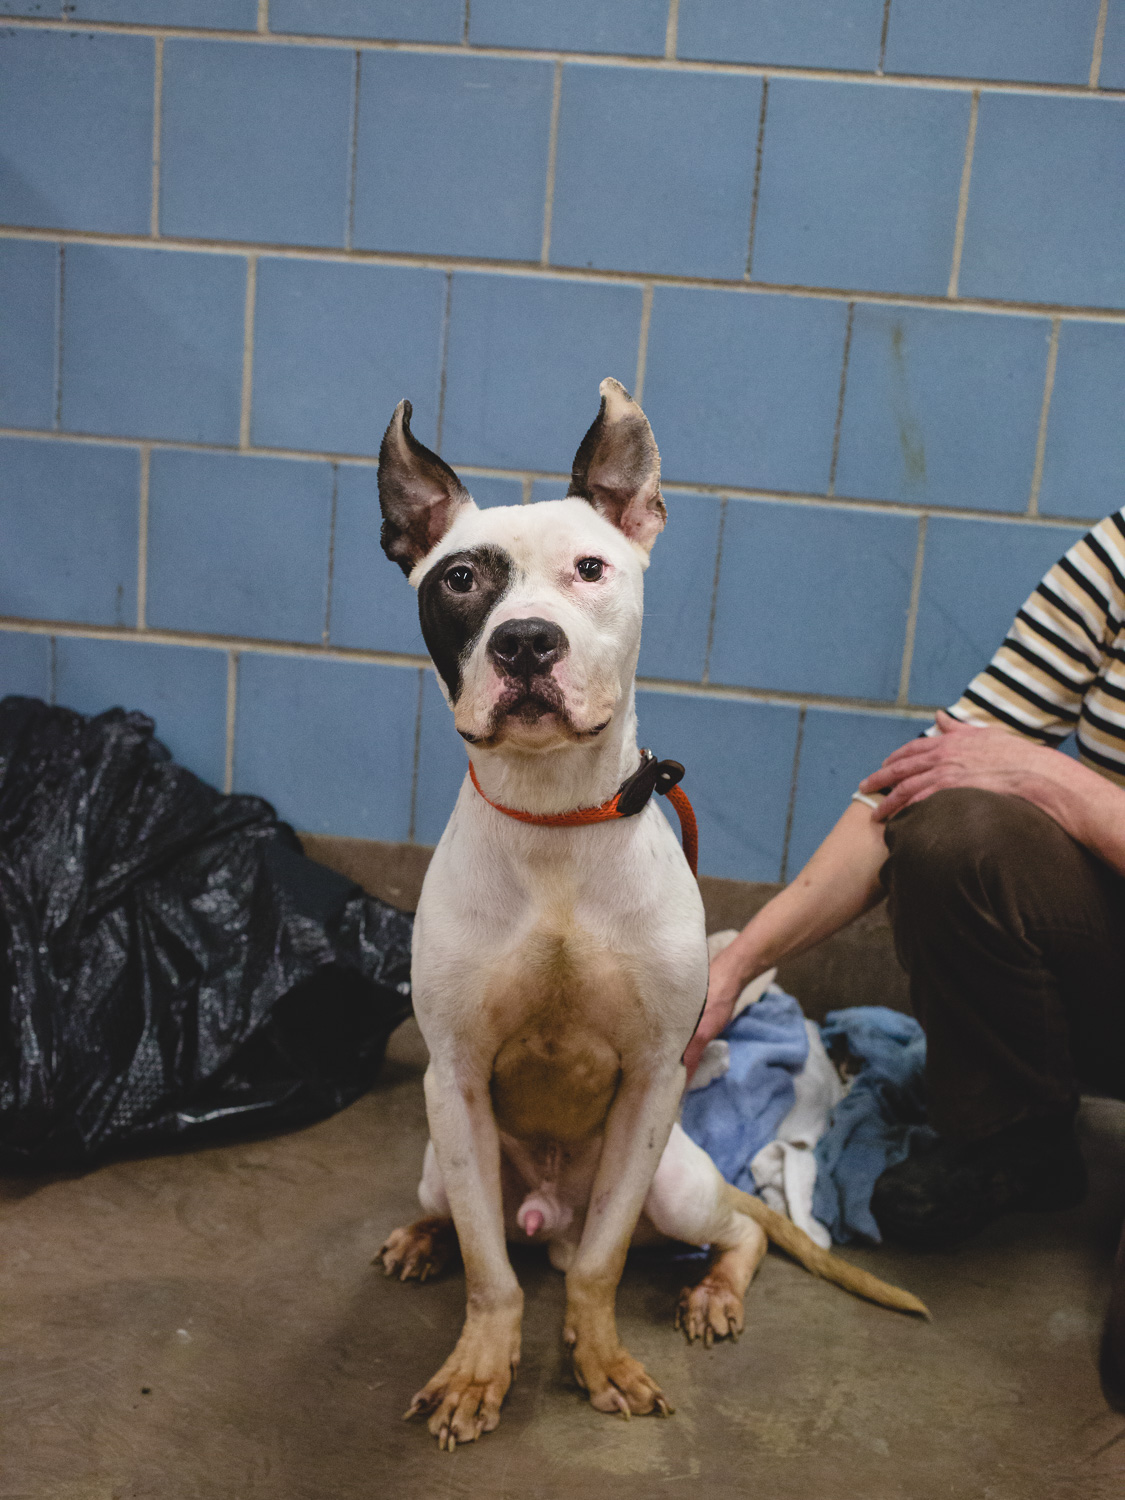 Bowie at the city's shelter